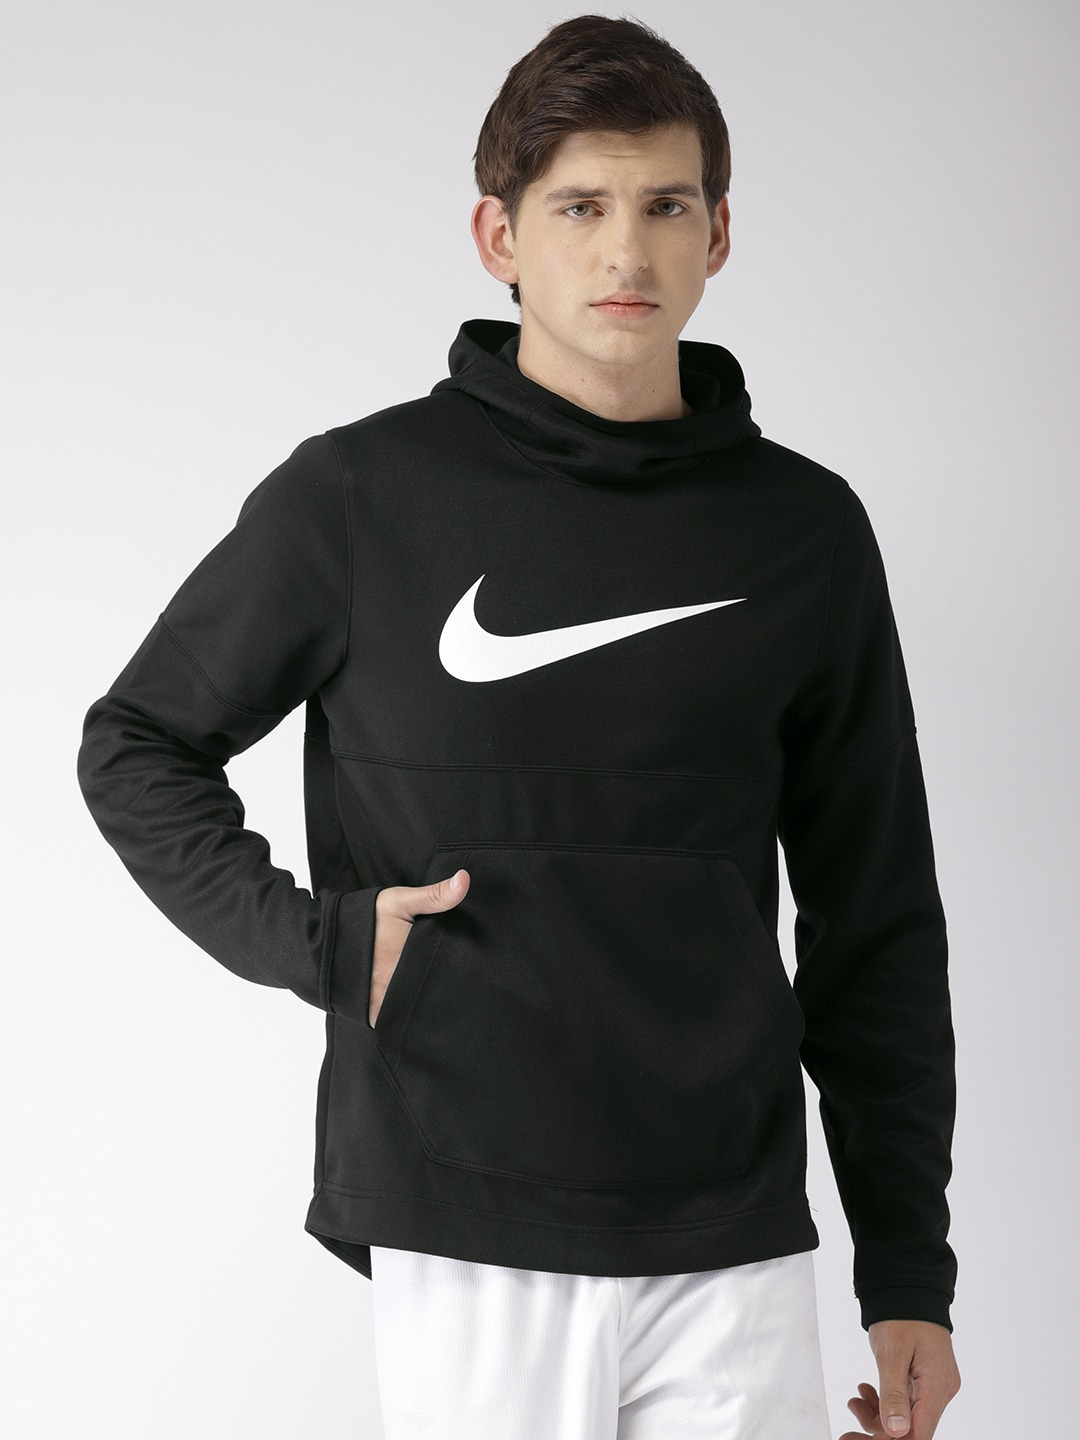 ee1561dd4c50c7 Nike Men Sweatshirts Skirts - Buy Nike Men Sweatshirts Skirts online in  India